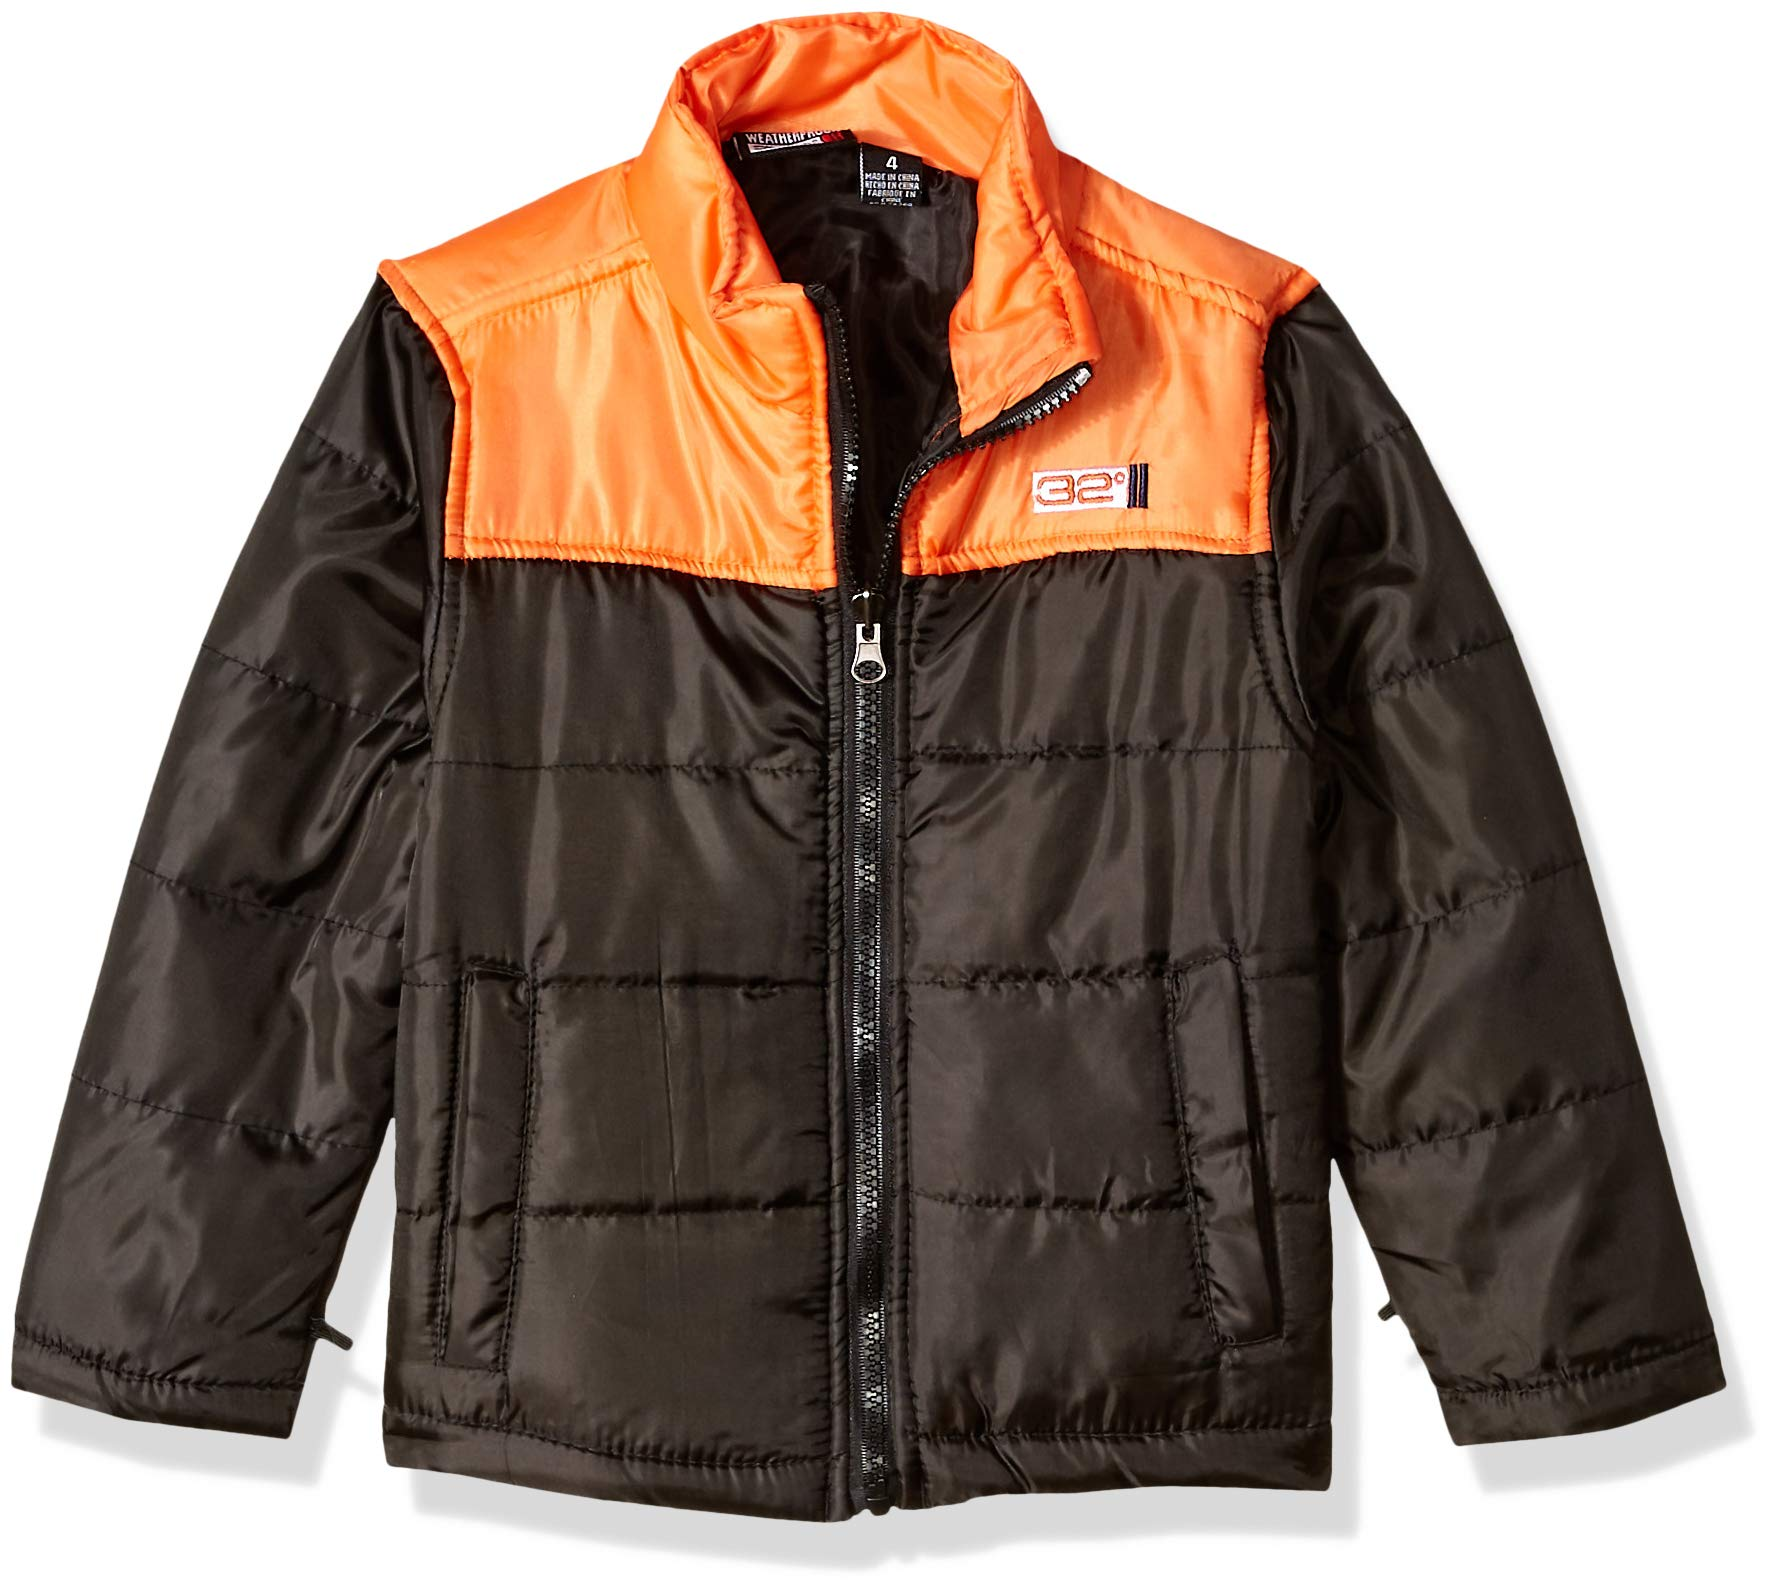 32 DEGREES Weatherproof Boys' Little Outerwear Jacket (More Styles Available), Softshell Systems Charcoal Heather/Black, 4 by 32 DEGREES (Image #4)